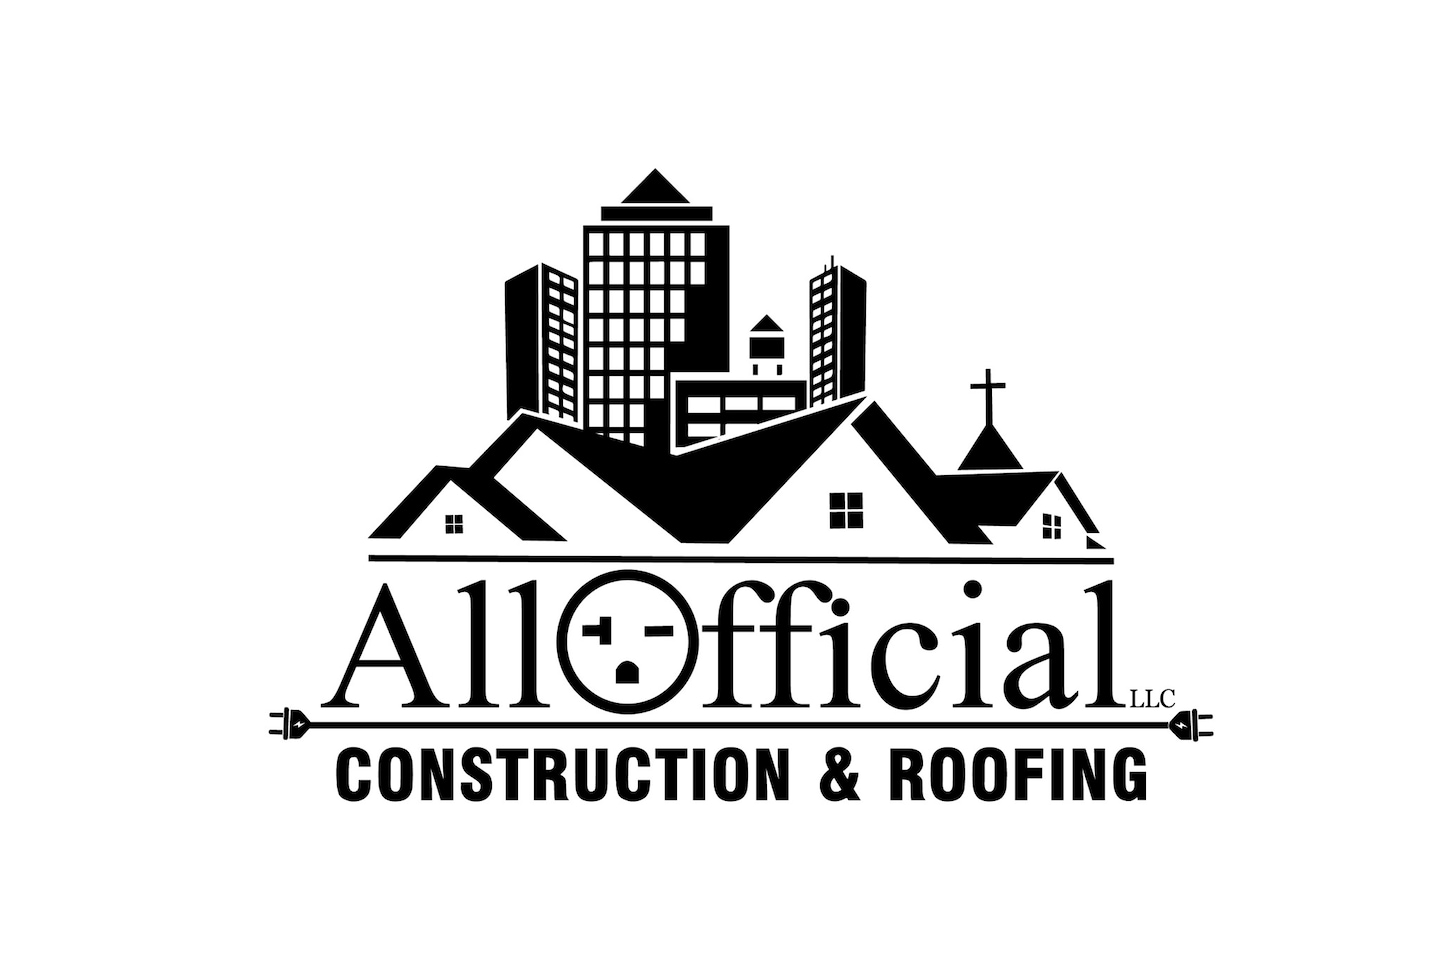 All Official Construction and Roofing